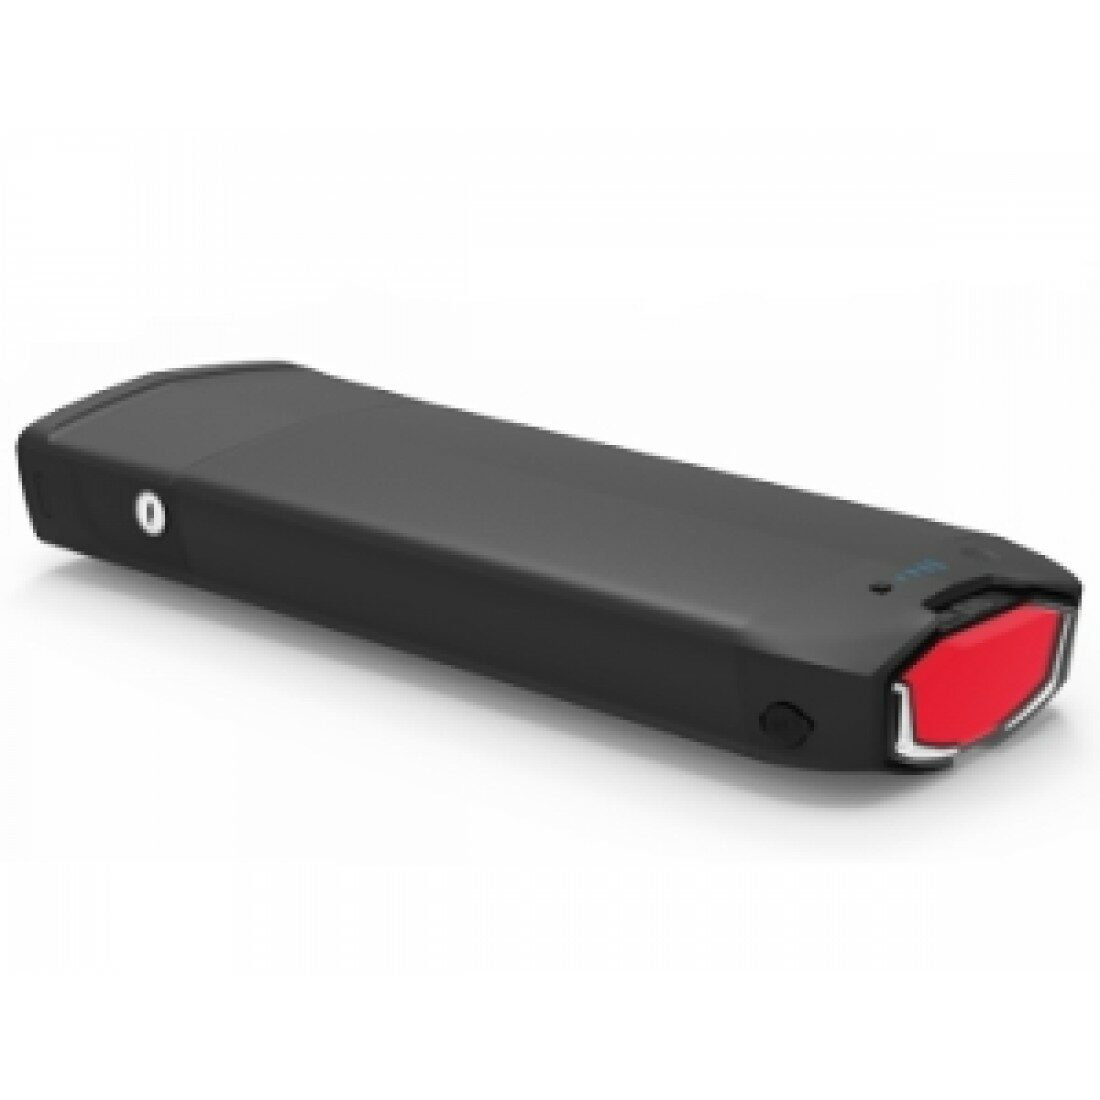 Lithium Ion Battery Pack 1100x1100